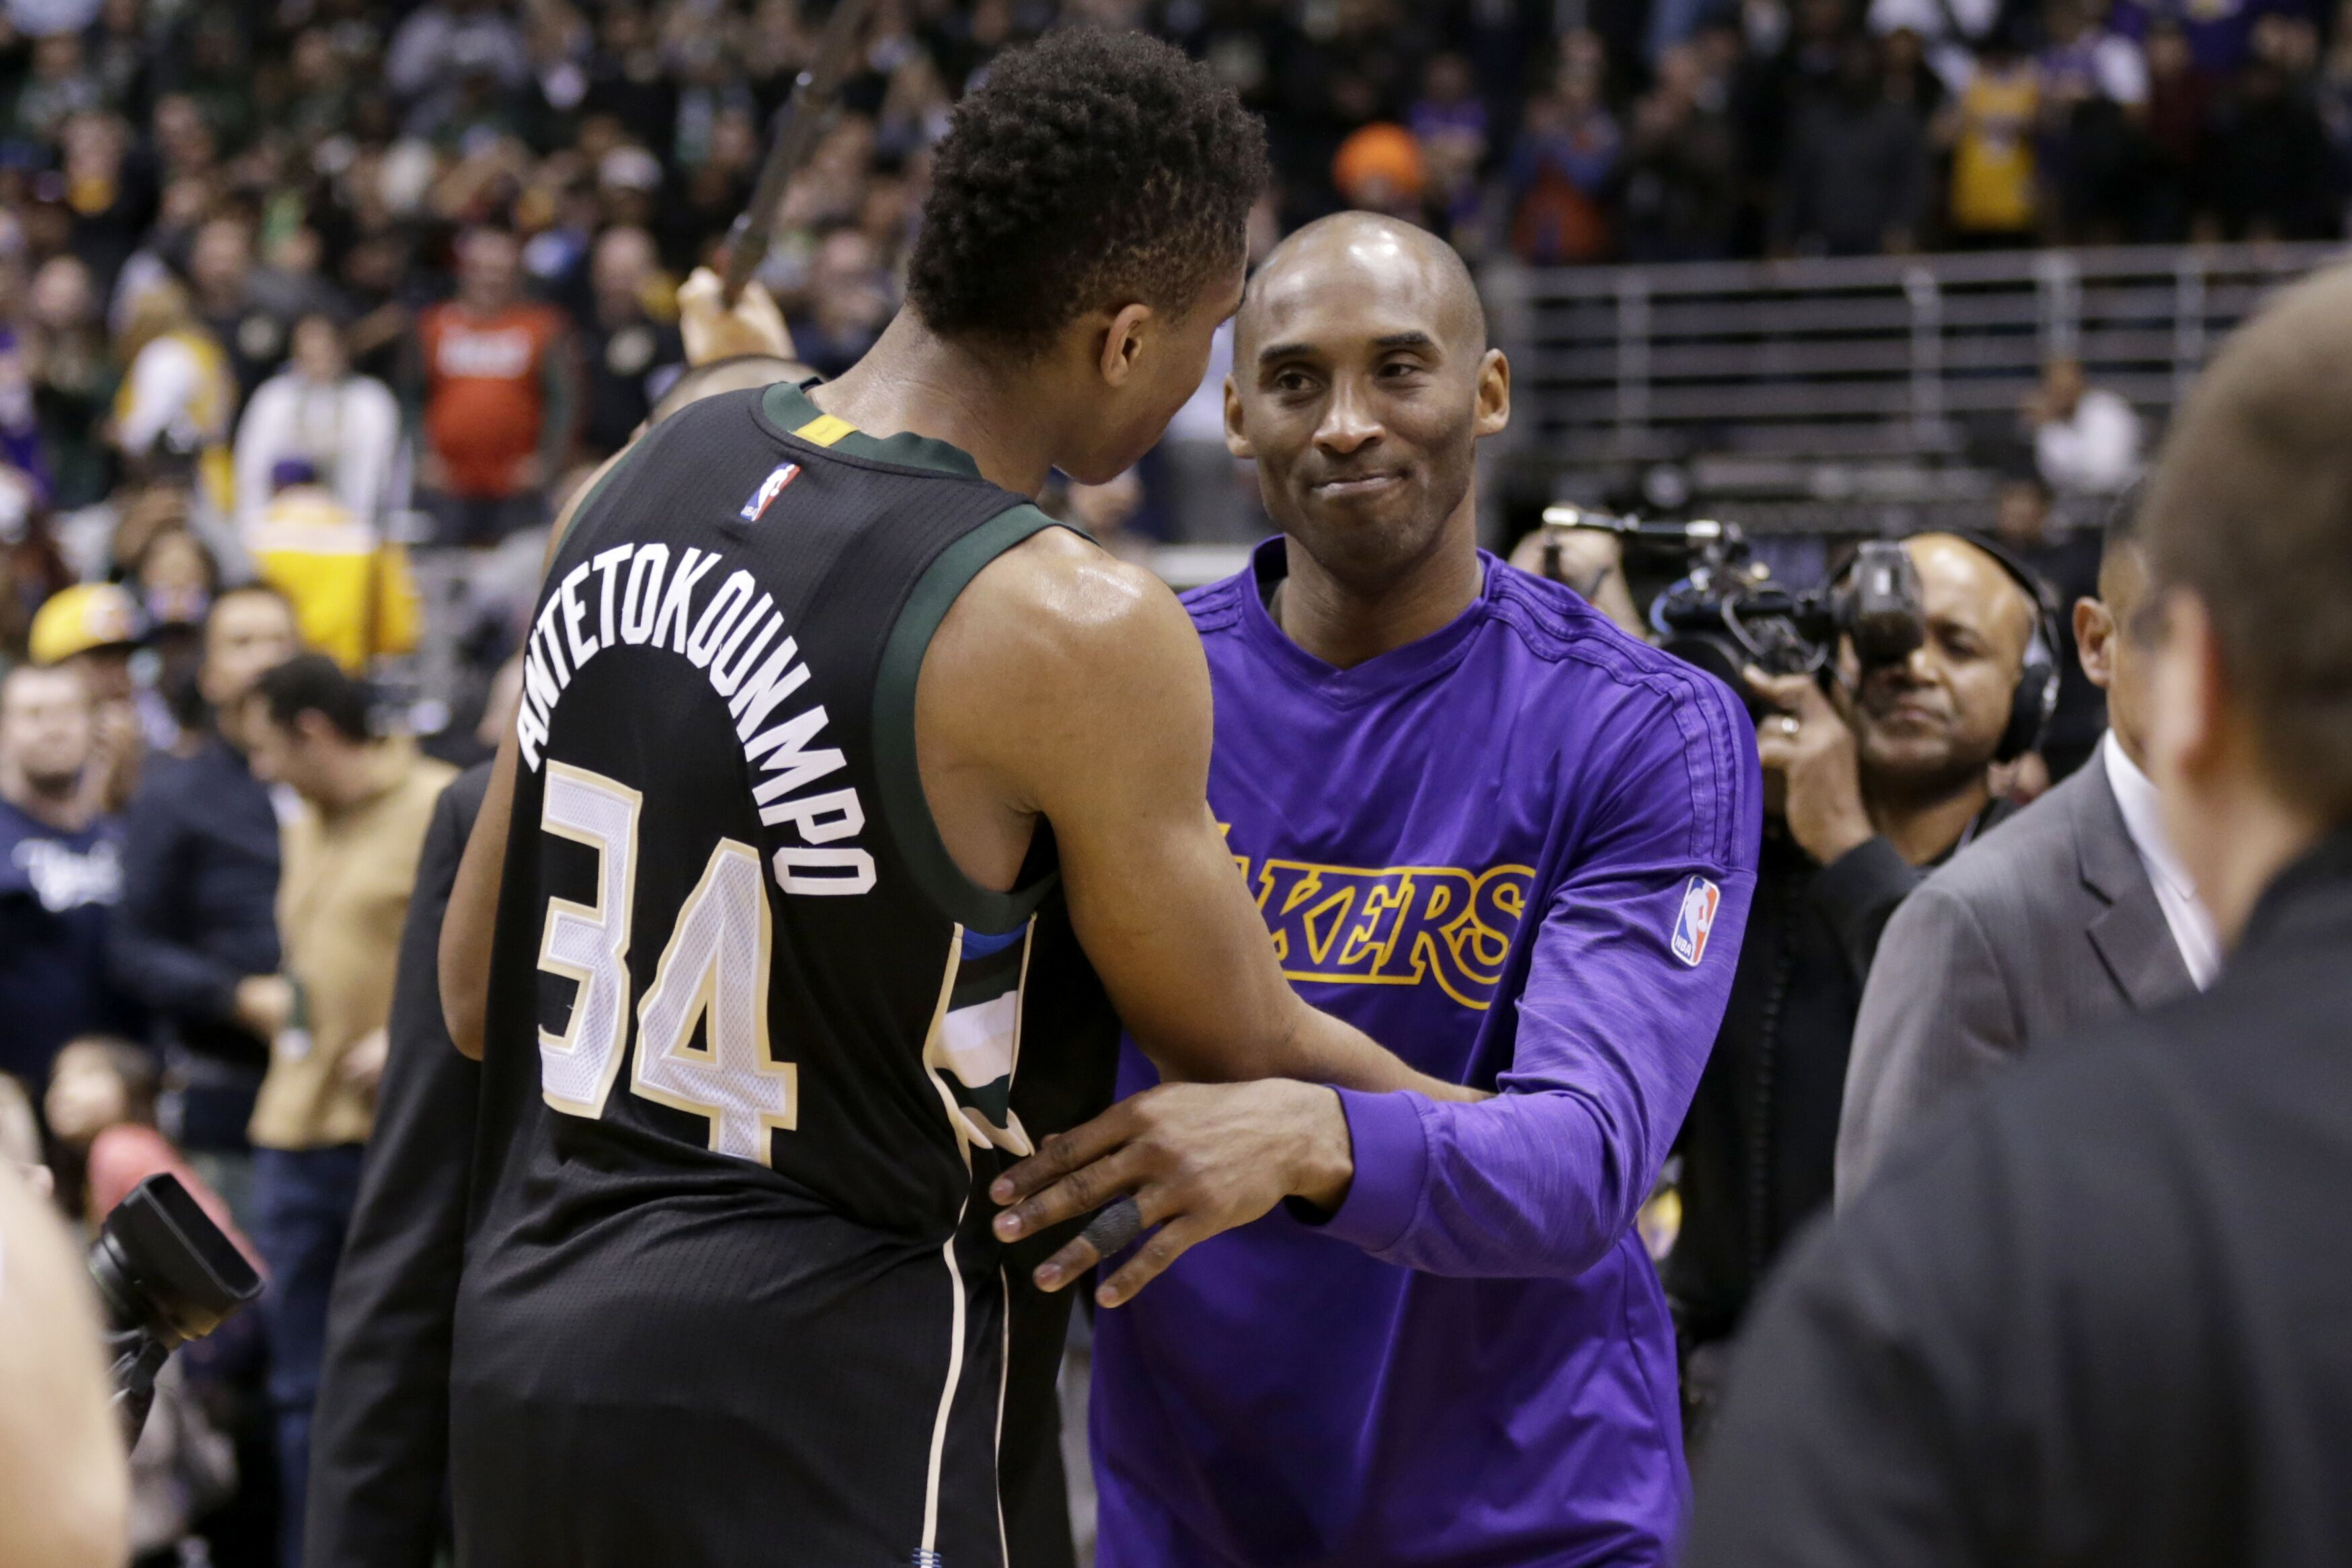 For Giannis Antetokounmpo, the inspiration of Kobe Bryant loomed large